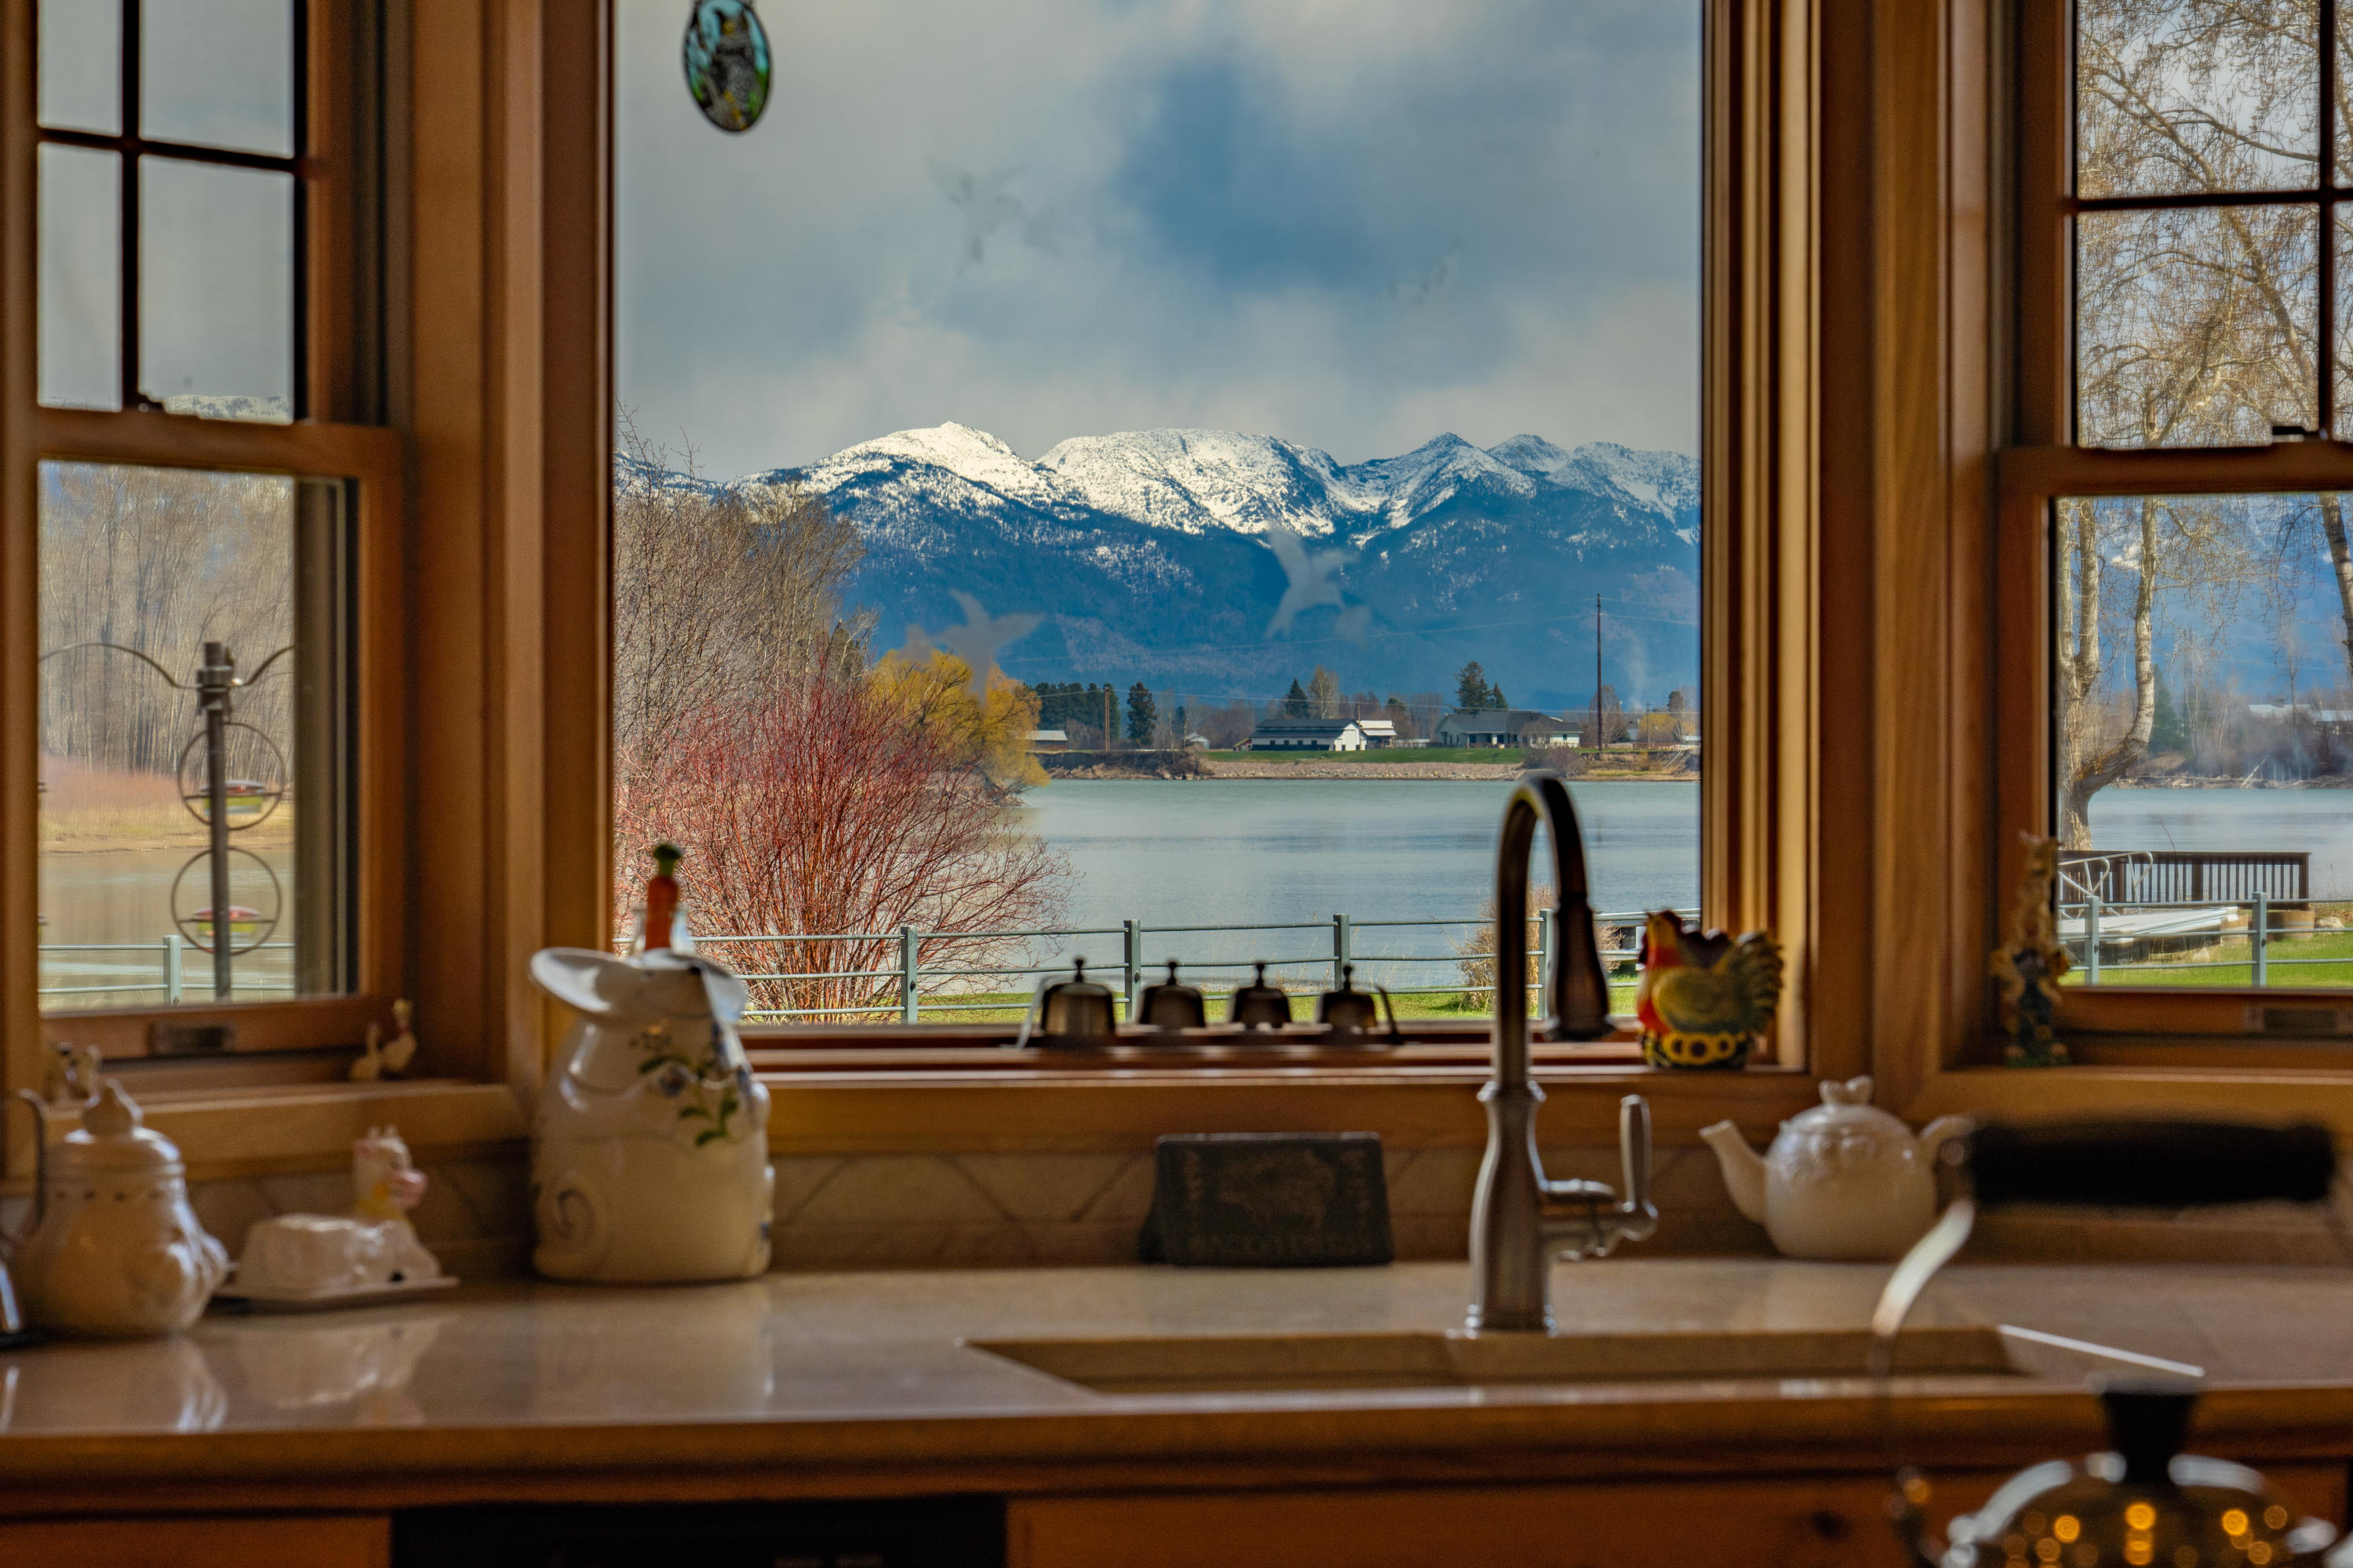 Home for Sale at 755 Lower Valley Road in Kalispell, Montana for